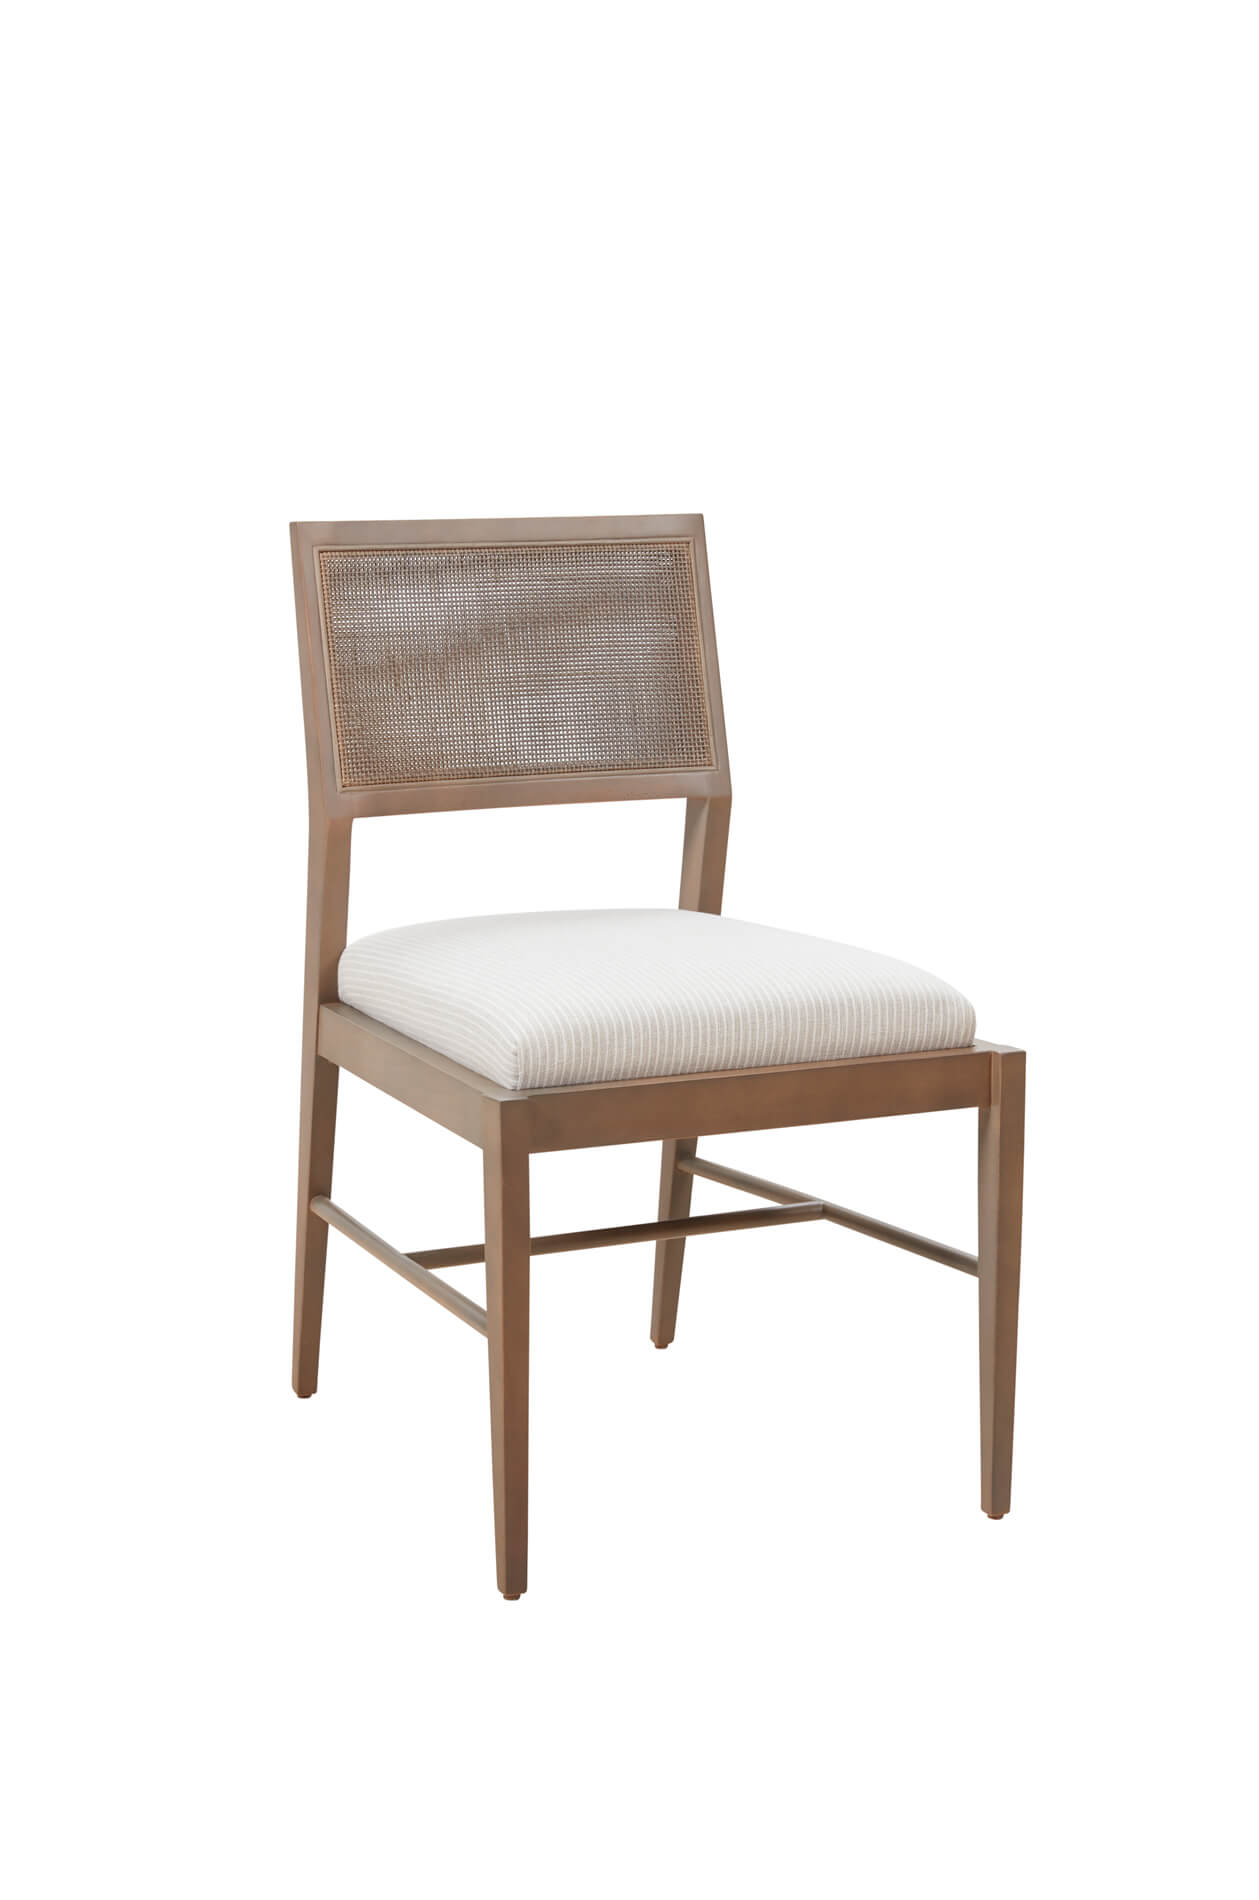 Fairfield's Larson Upholstered Dining Chair